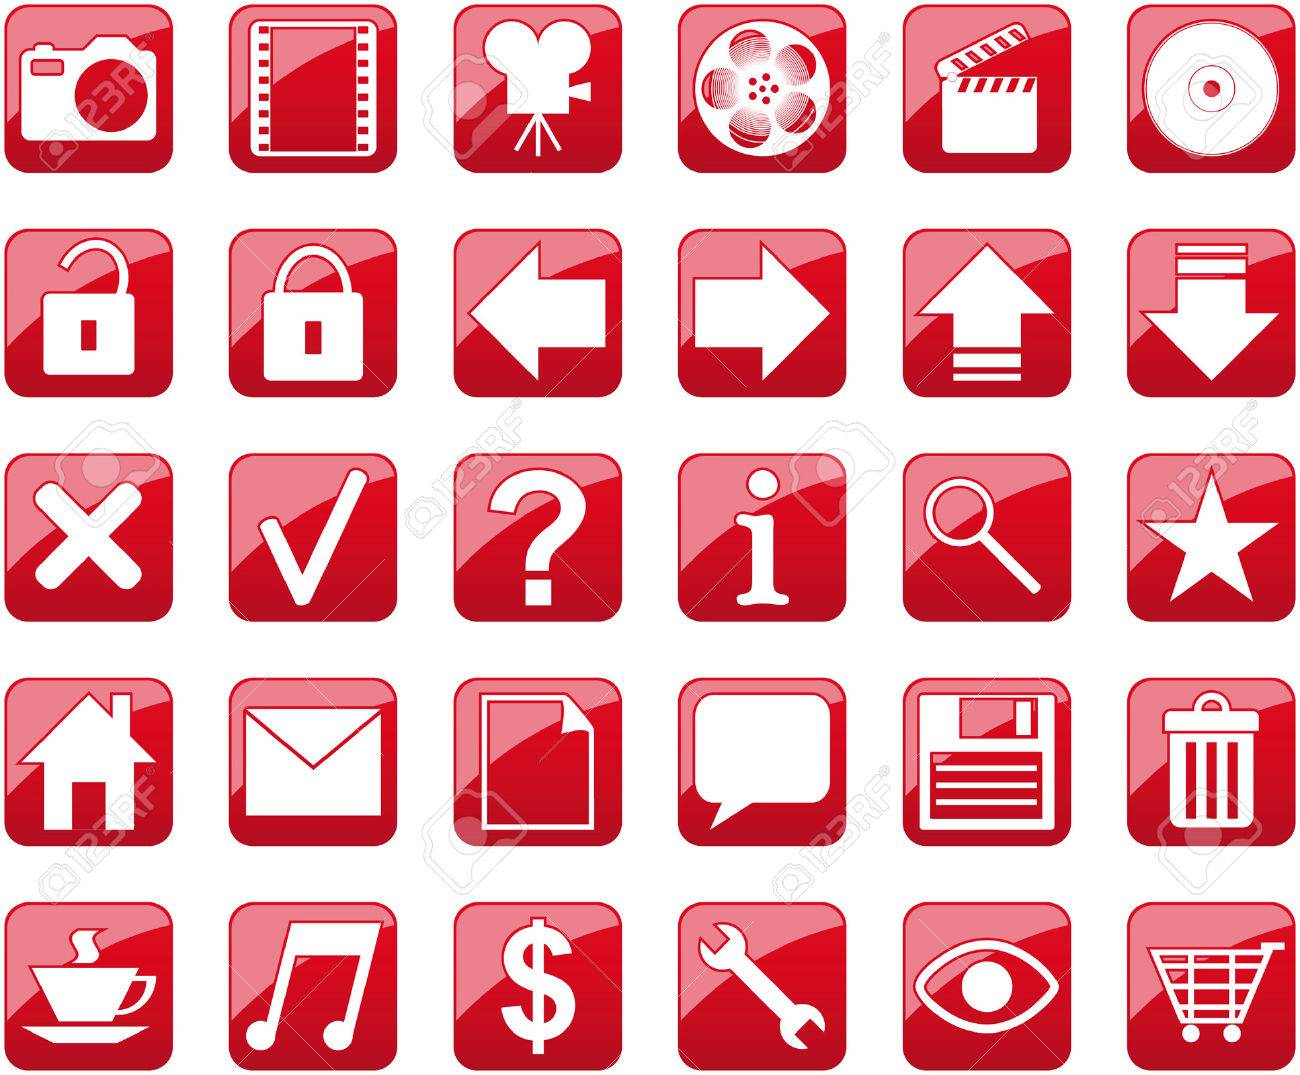 Red Icons Stock Vector - 5500156